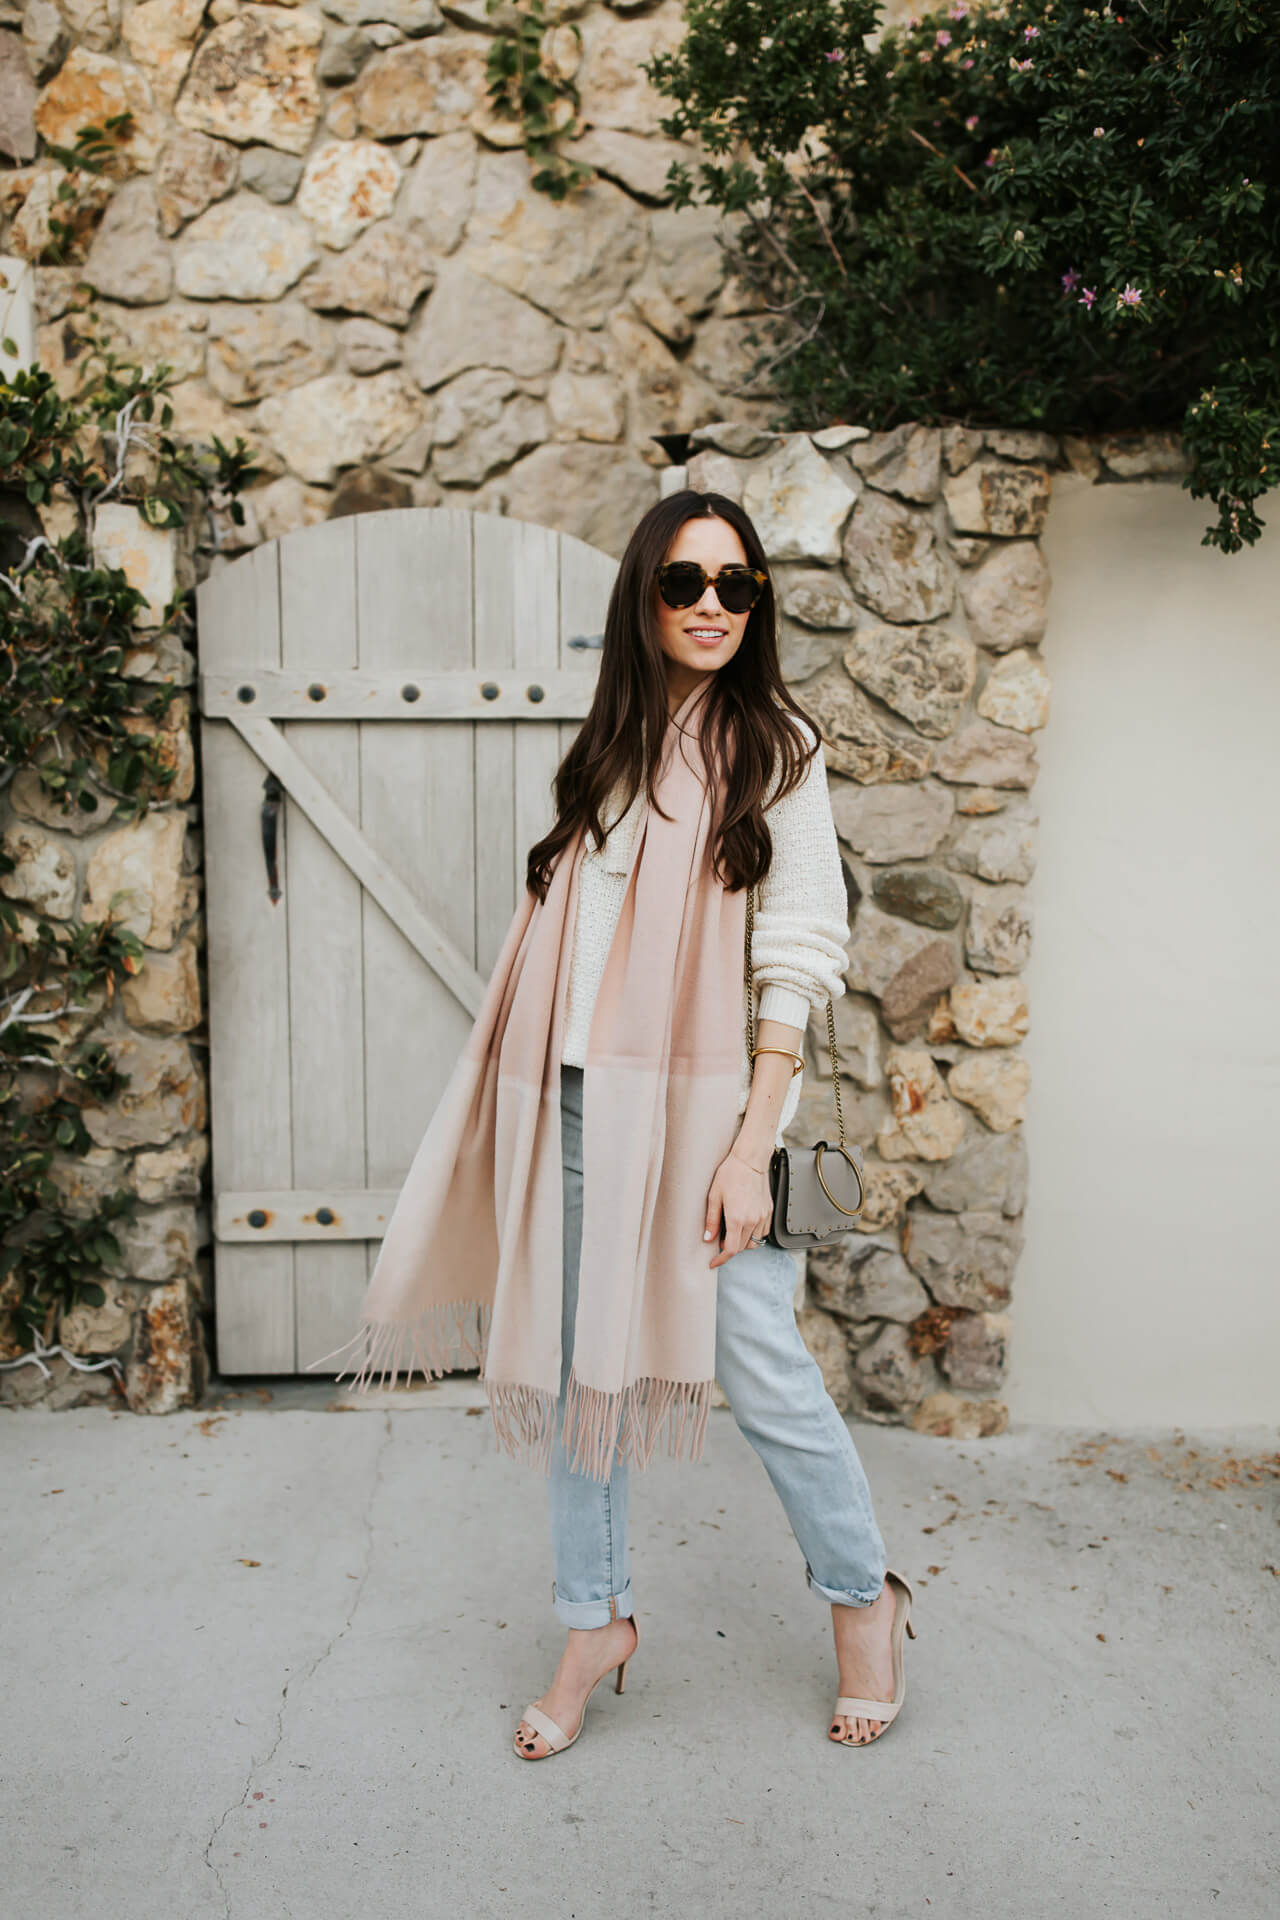 cozy california winter outfit inspiration with mom jeans - M Loves M LA fashion and lifestyle blogger @marmar